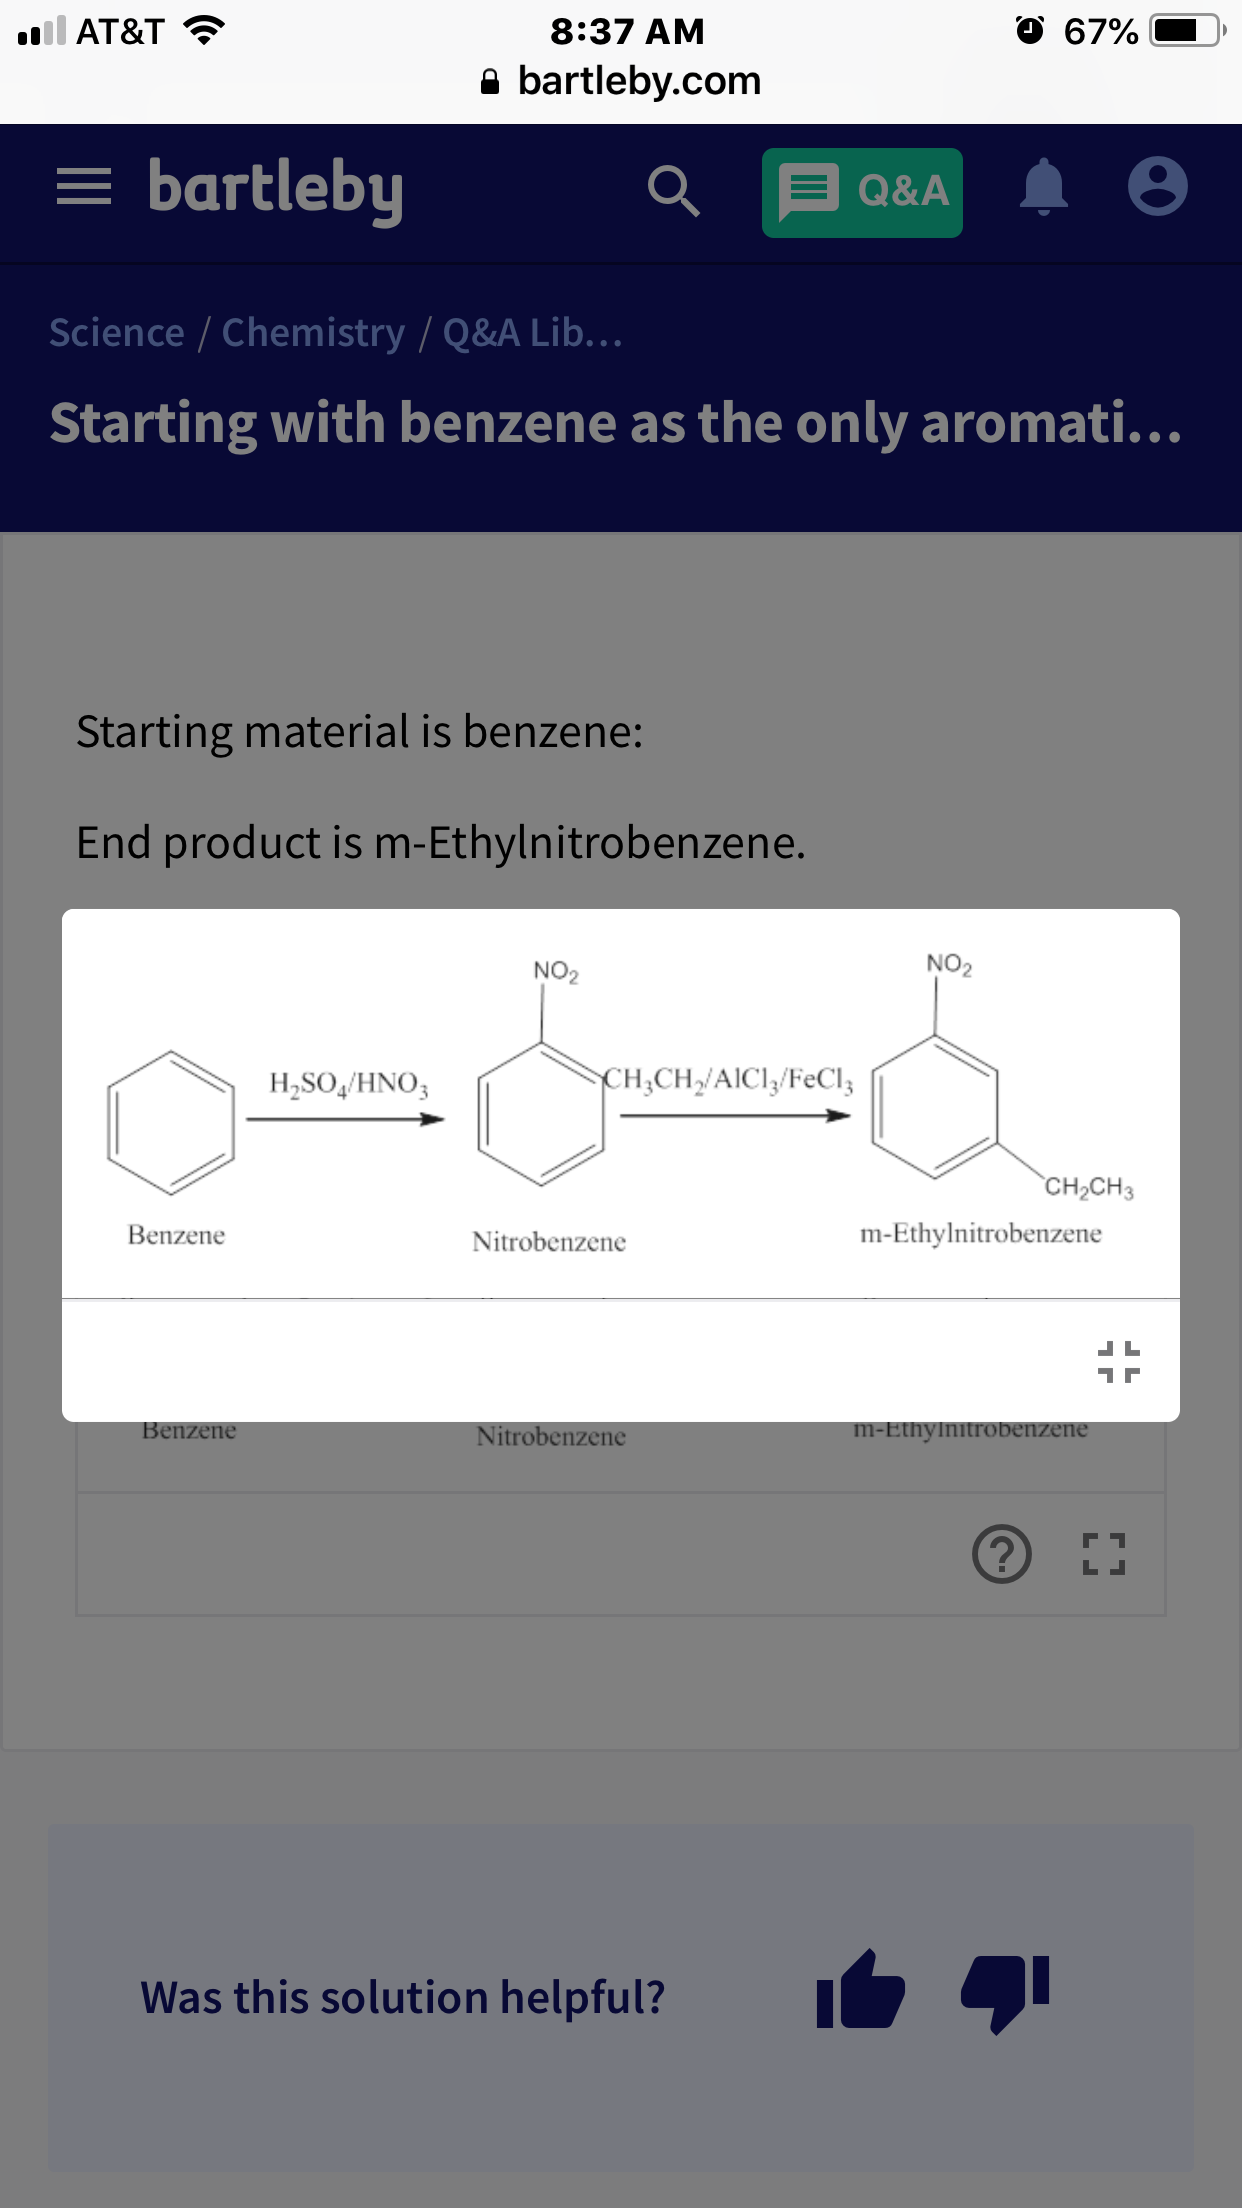 O 67% l AT&T 8:37 AM bartleby.com = bartleby Q&A Science / Chemistry / Q&A Lib... Starting with benzene as the only aromati... Starting material is benzene: End product is m-Ethylnitrobenzene. NO2 NO2 CHCHAICI/FeCl3 H,SO,HNΟ, CH2CH3 m-Ethylnitrobenzene Benzene Nitrobenzene Benzene m-Ethylnitrobenzene Nitrobenzene LI Was this solution helpful?